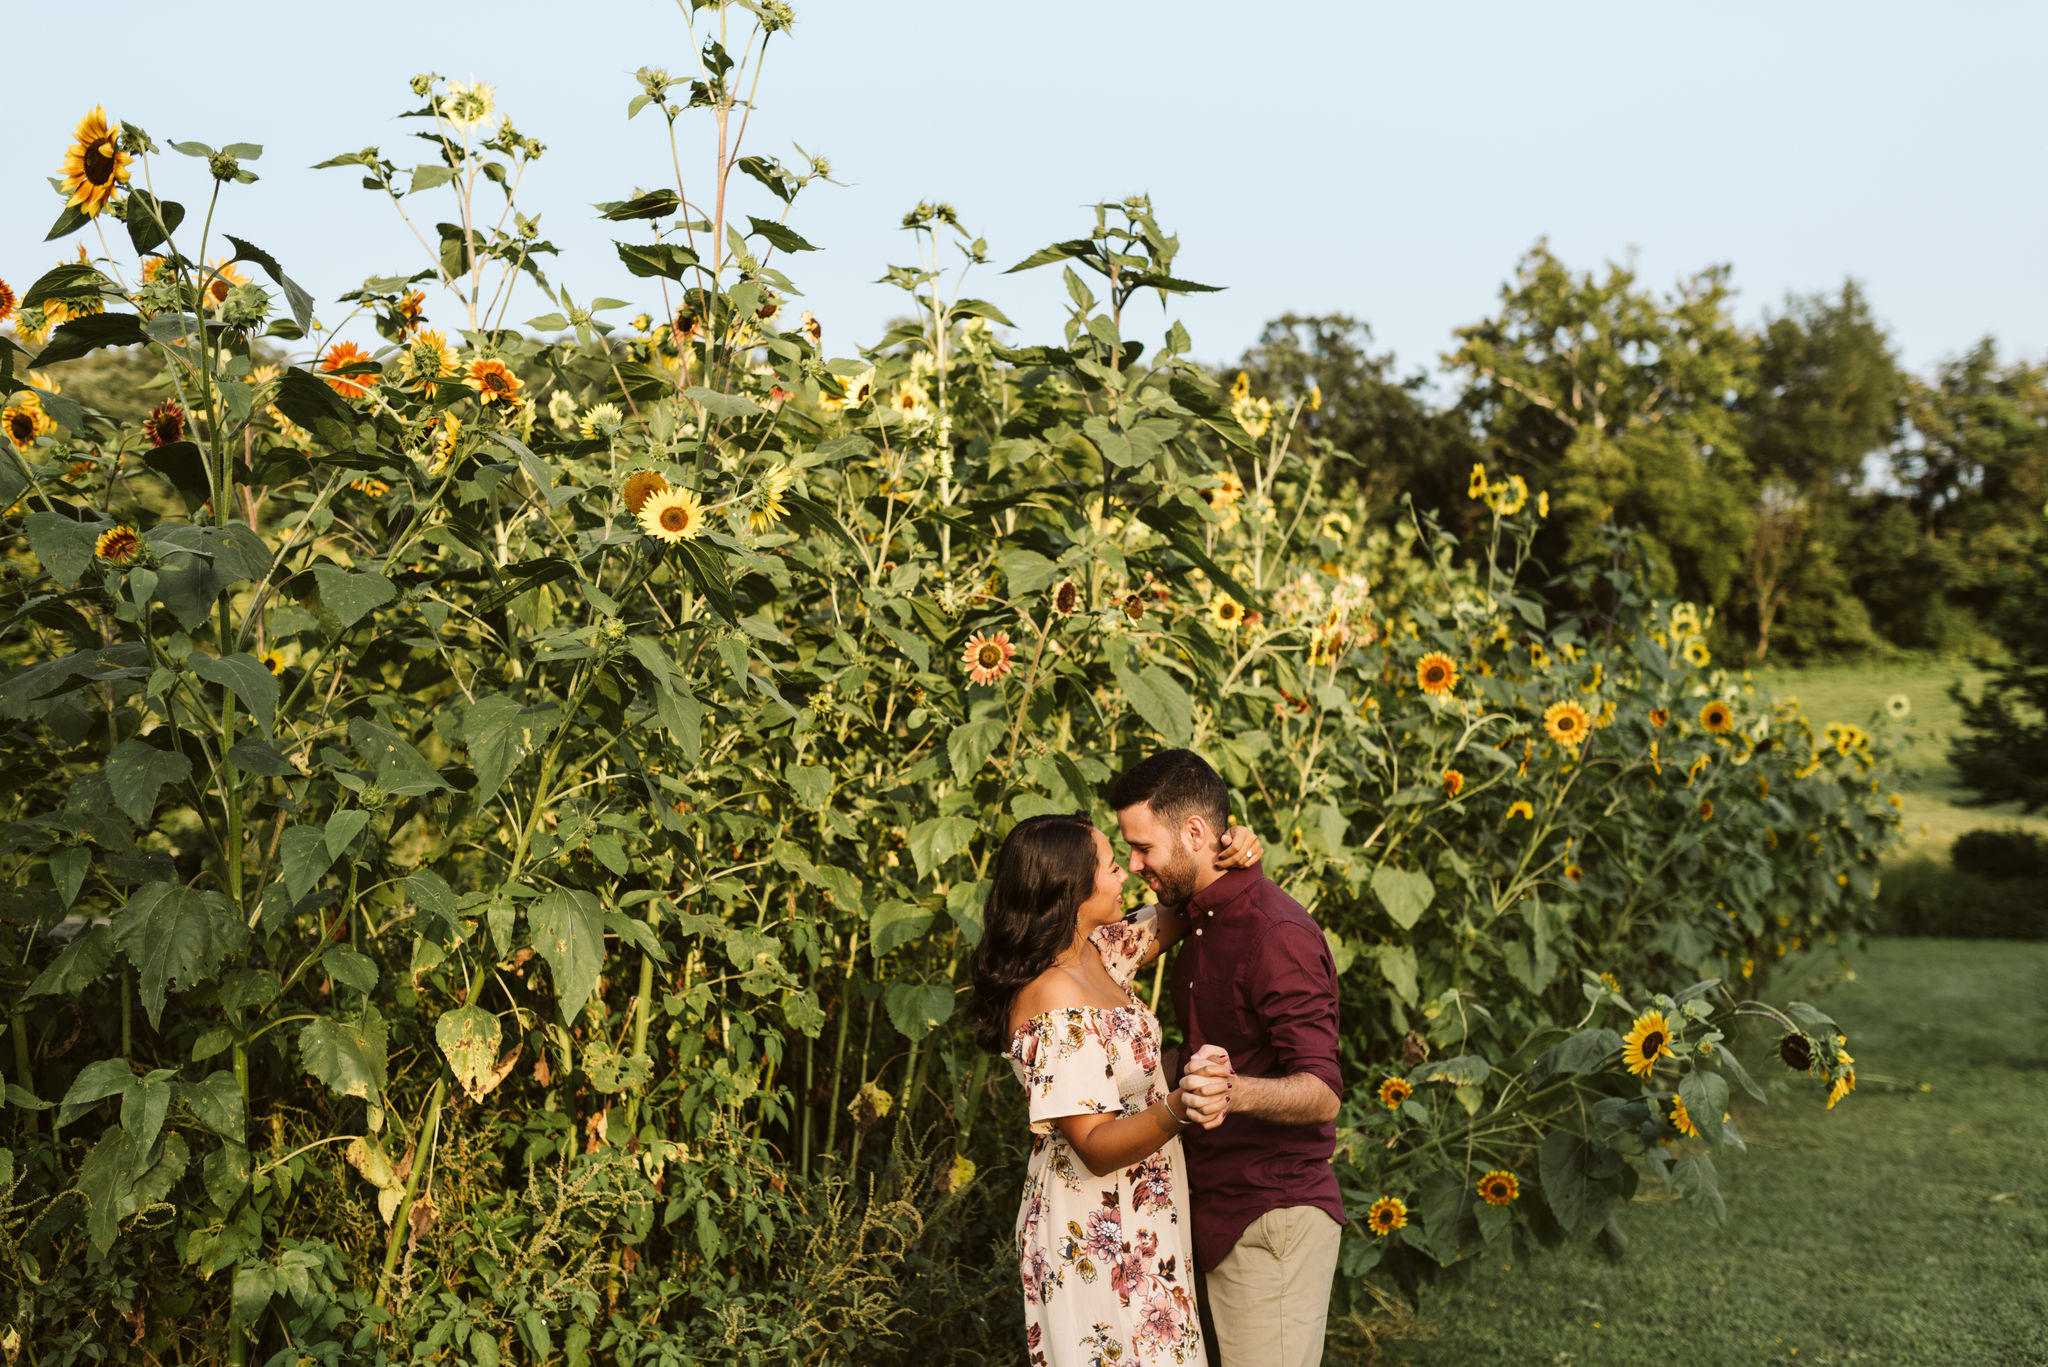 Frederick Maryland, Baltimore Wedding Photographer, Engagement, Bend in the River Farm, Outdoor, Rustic, Nature, Bride and Groom Dancing in Field of Sunflowers, Sunshine